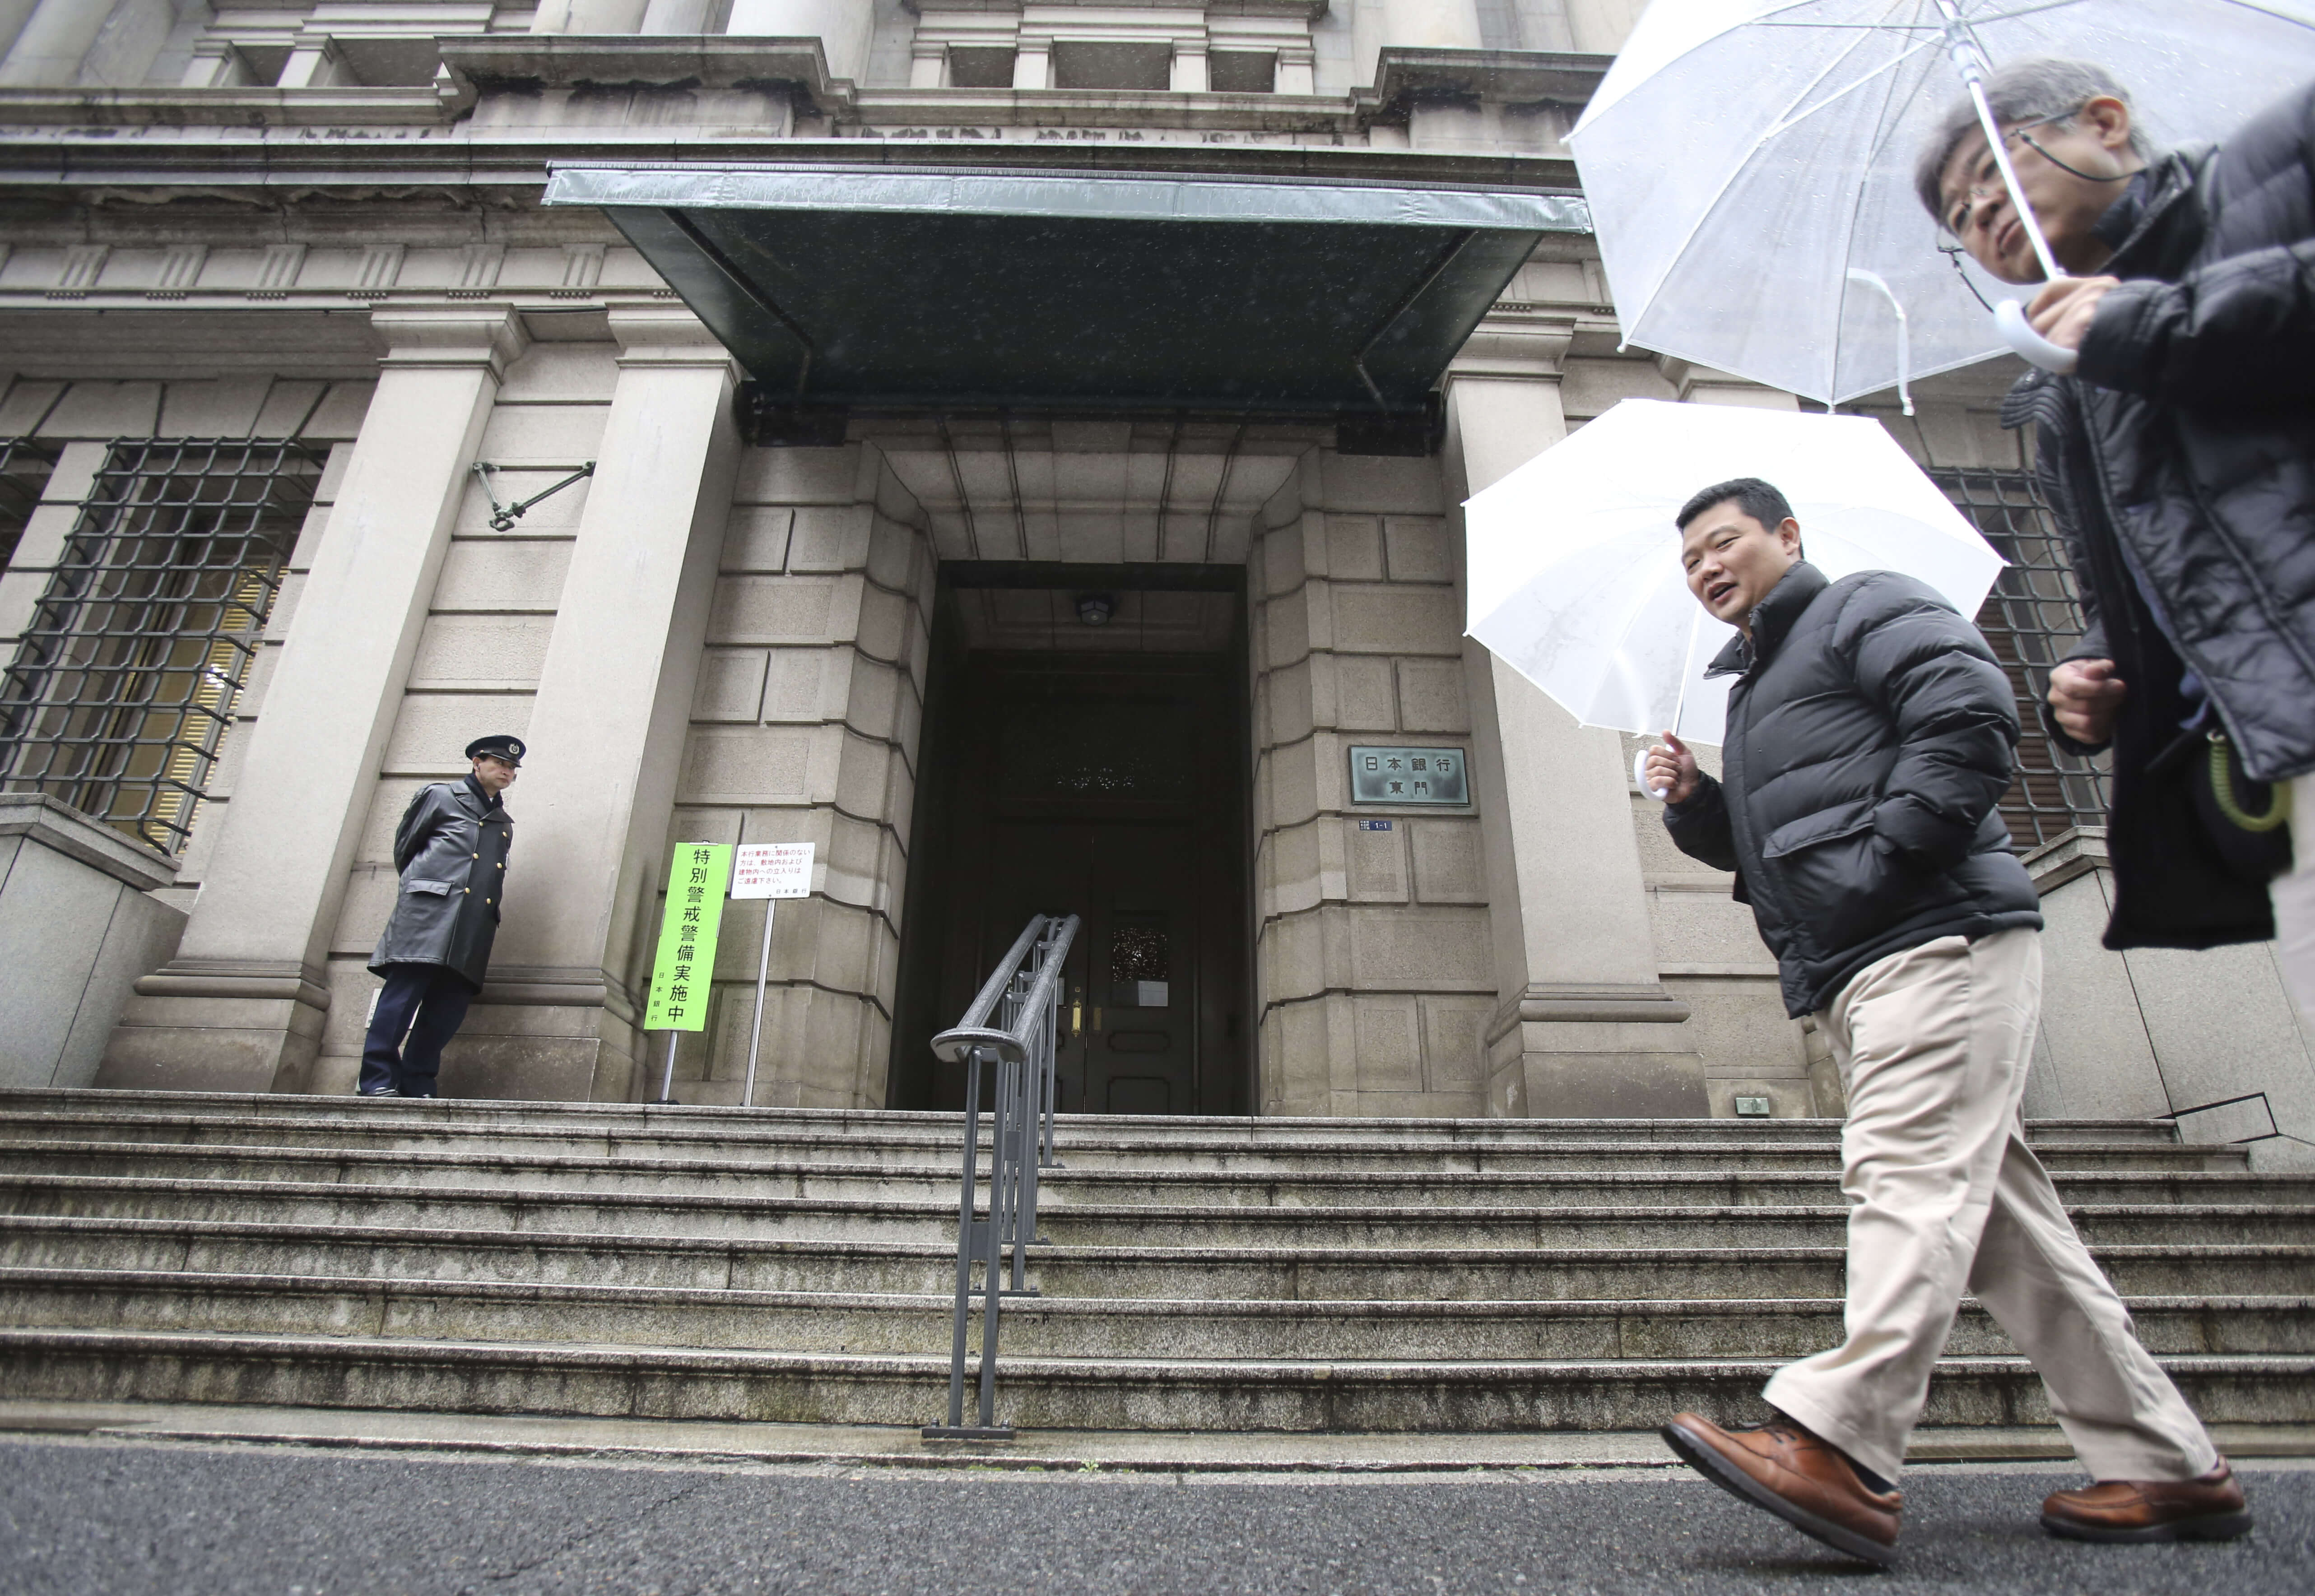 People walk past in front of Bank of Japan on Friday, Jan. 29, 2016. The Bank of Japan last Friday introduced a negative interest policy for the first time, and has signaled that it's prepared to push rates further negative.